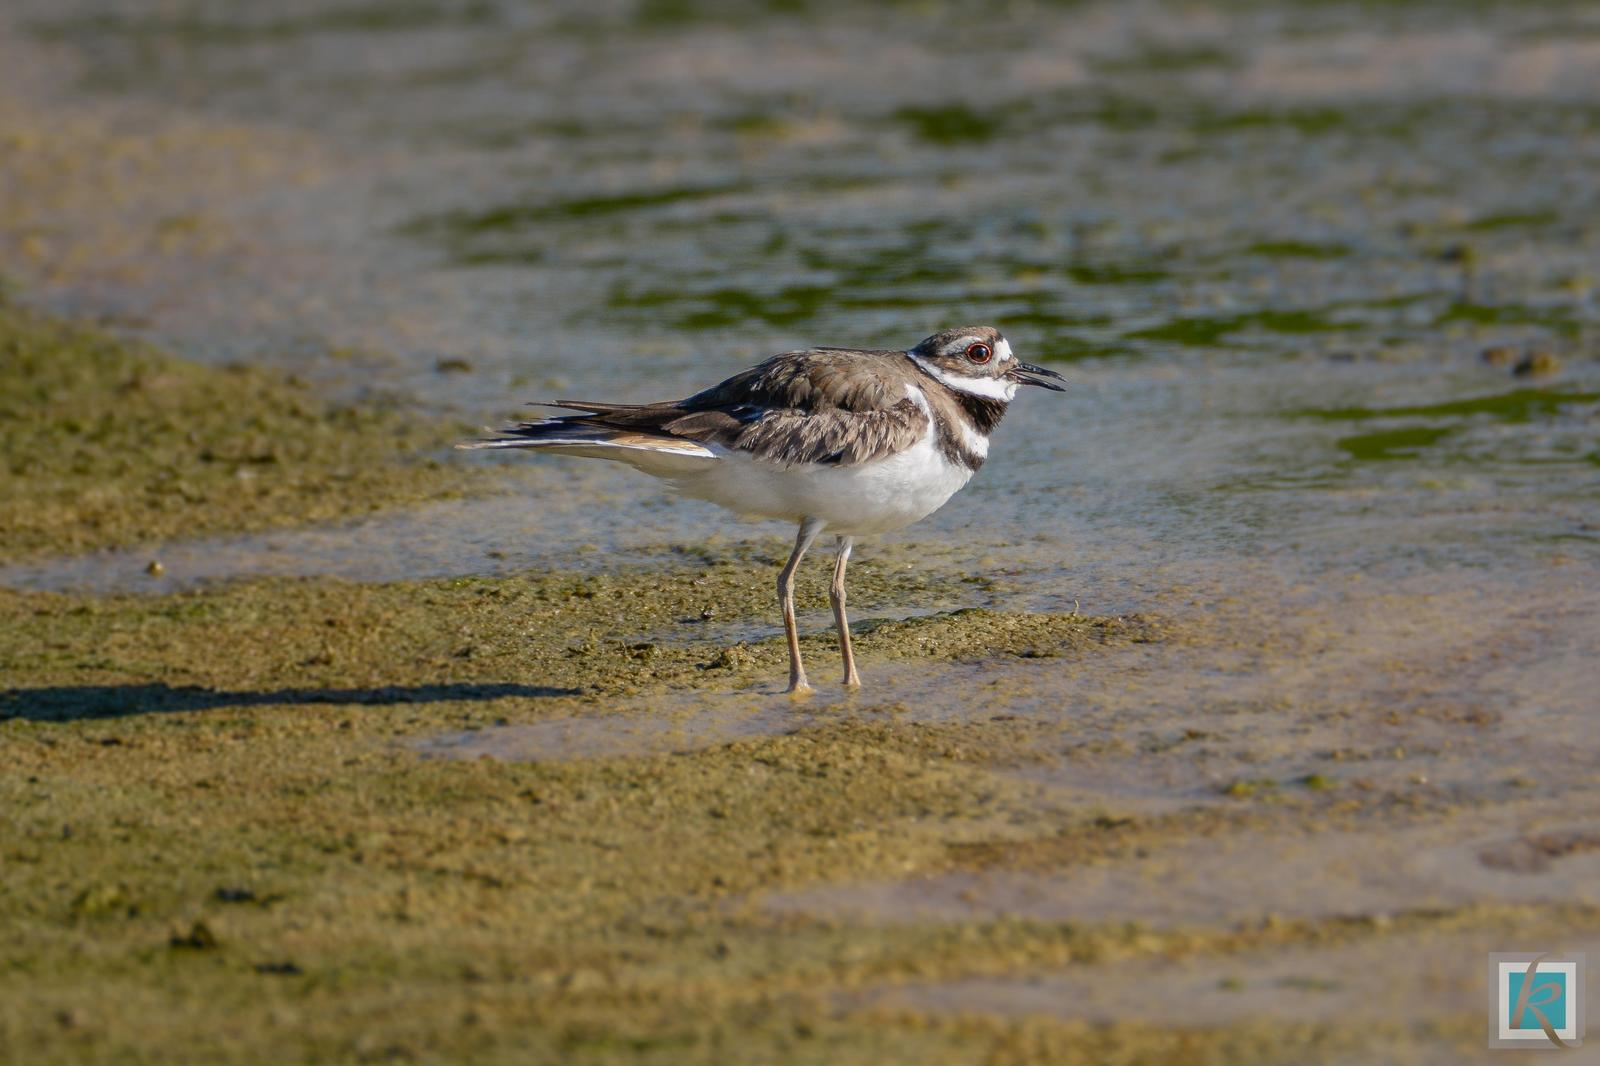 Killdeer Photo by Tyson Kahler